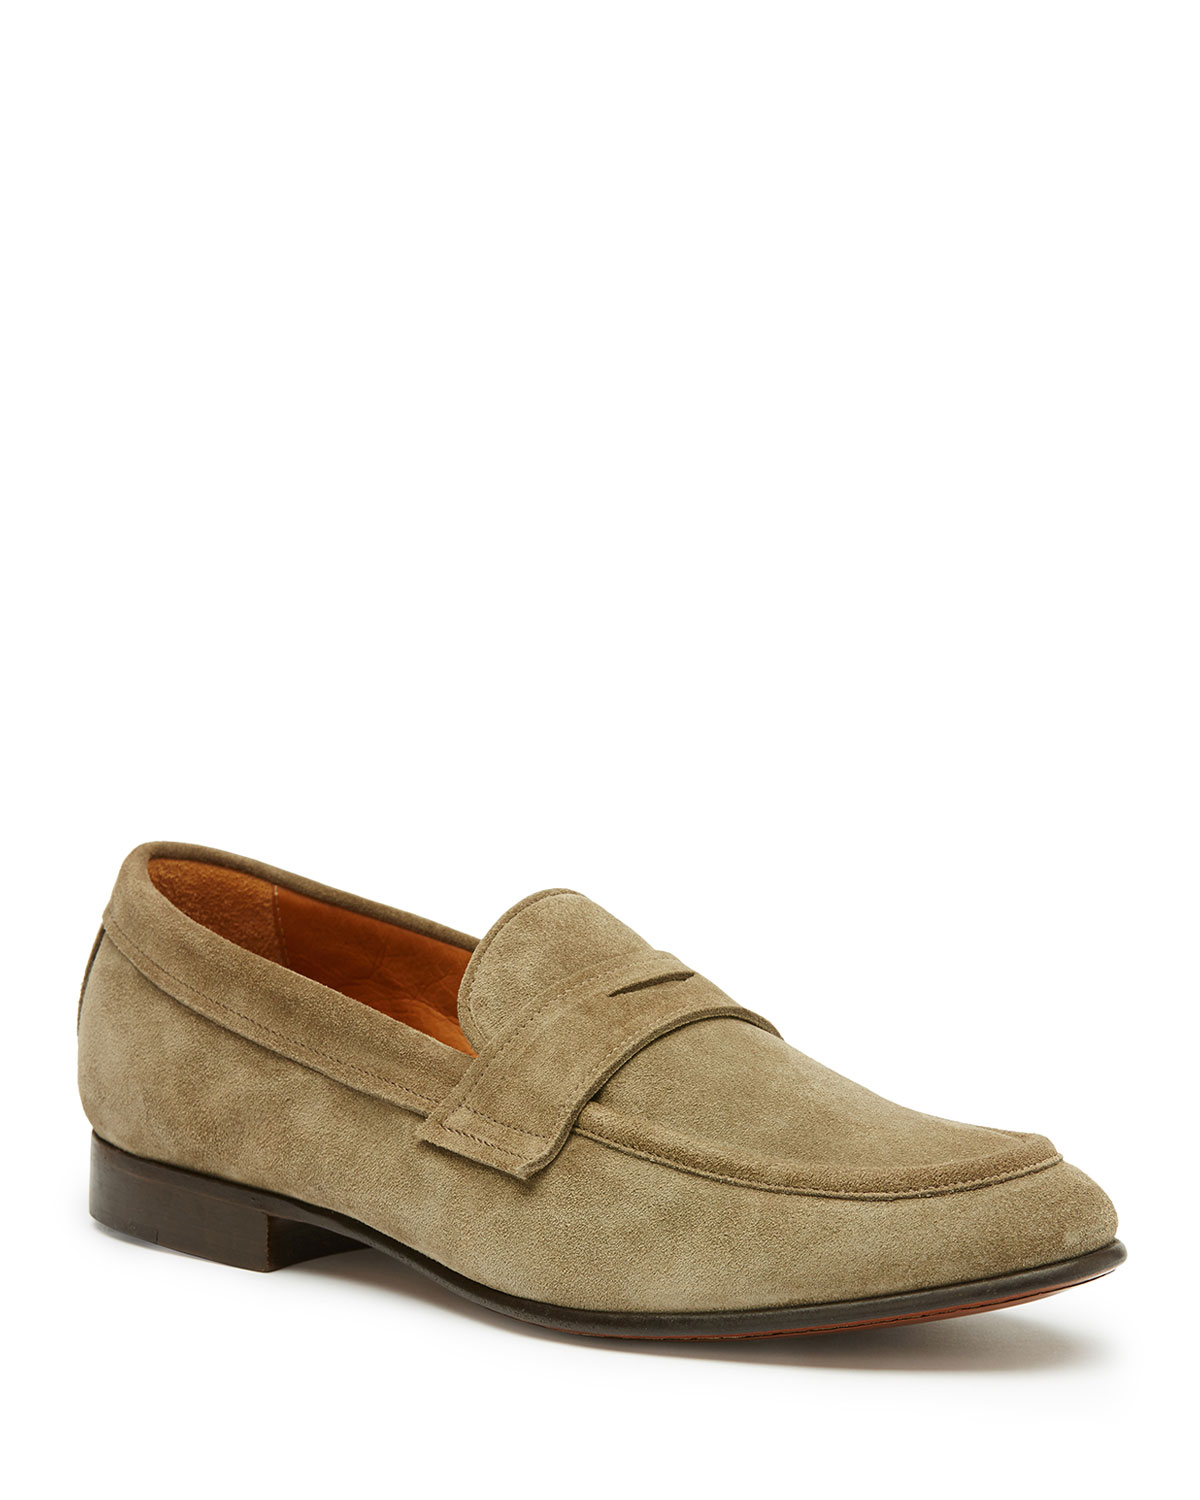 8cc34efe643 Quick Look. Frye · Men s Aiden Suede Penny Loafer